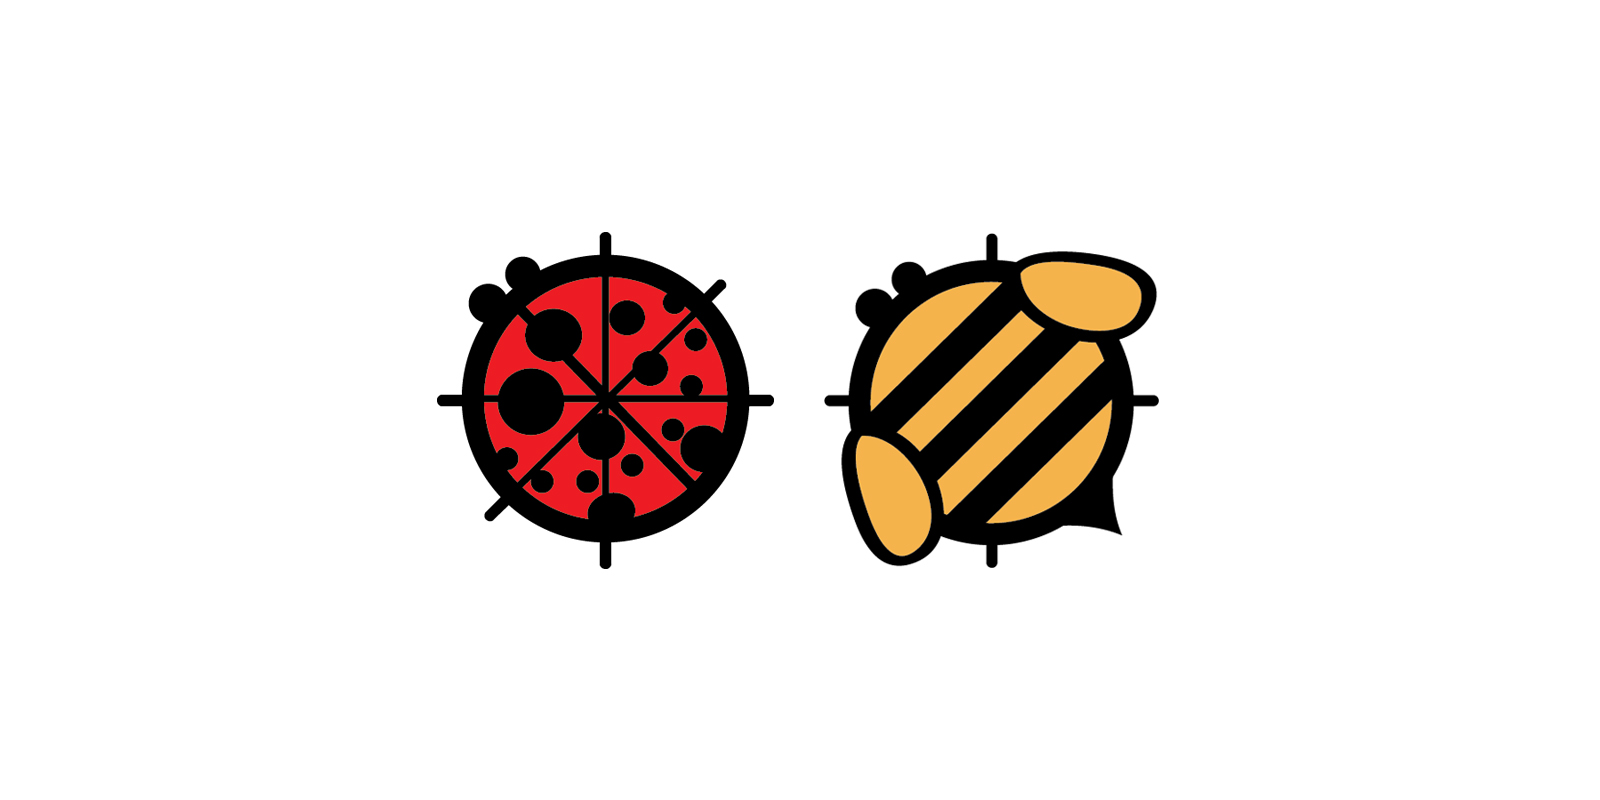 Release Notes - Ladybug 0.0.62 and Honeybee 0.0.59 - Grasshopper